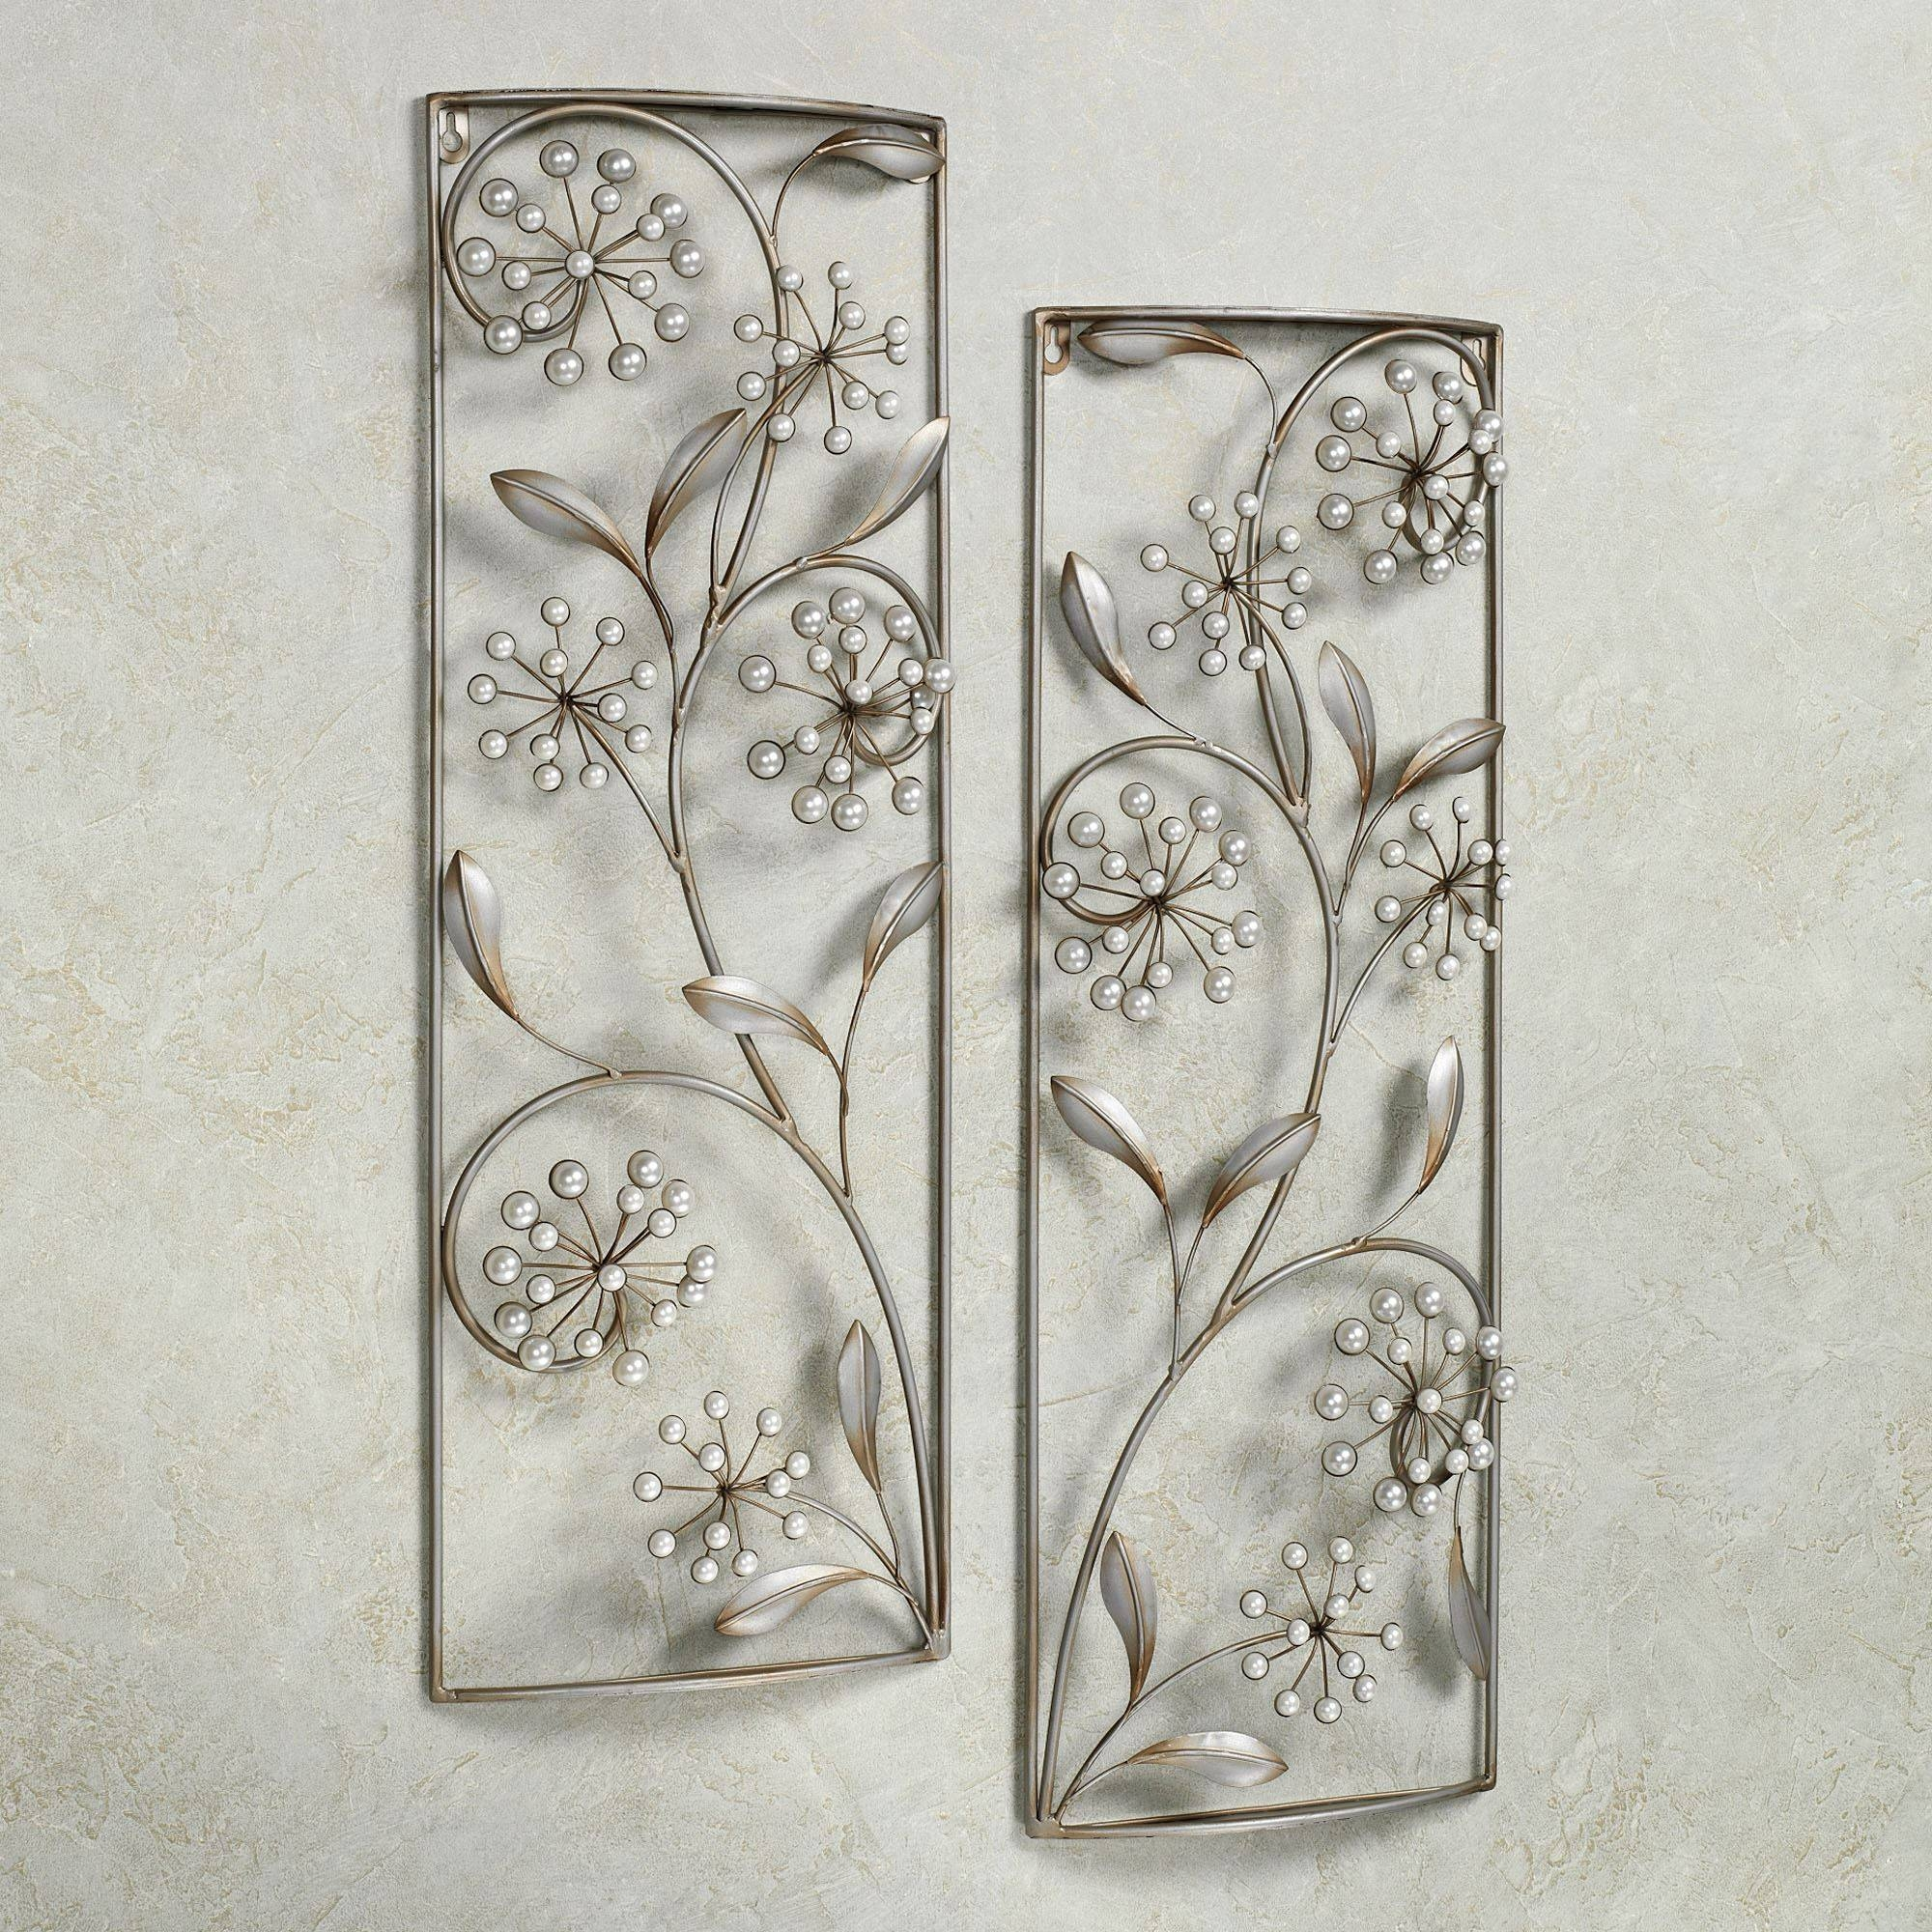 Breathtaking Pearlette Wall Panel Set Champagne Silver Metal Wall With Regard To Most Up To Date Wood Framed Metal Wall Art (View 3 of 20)